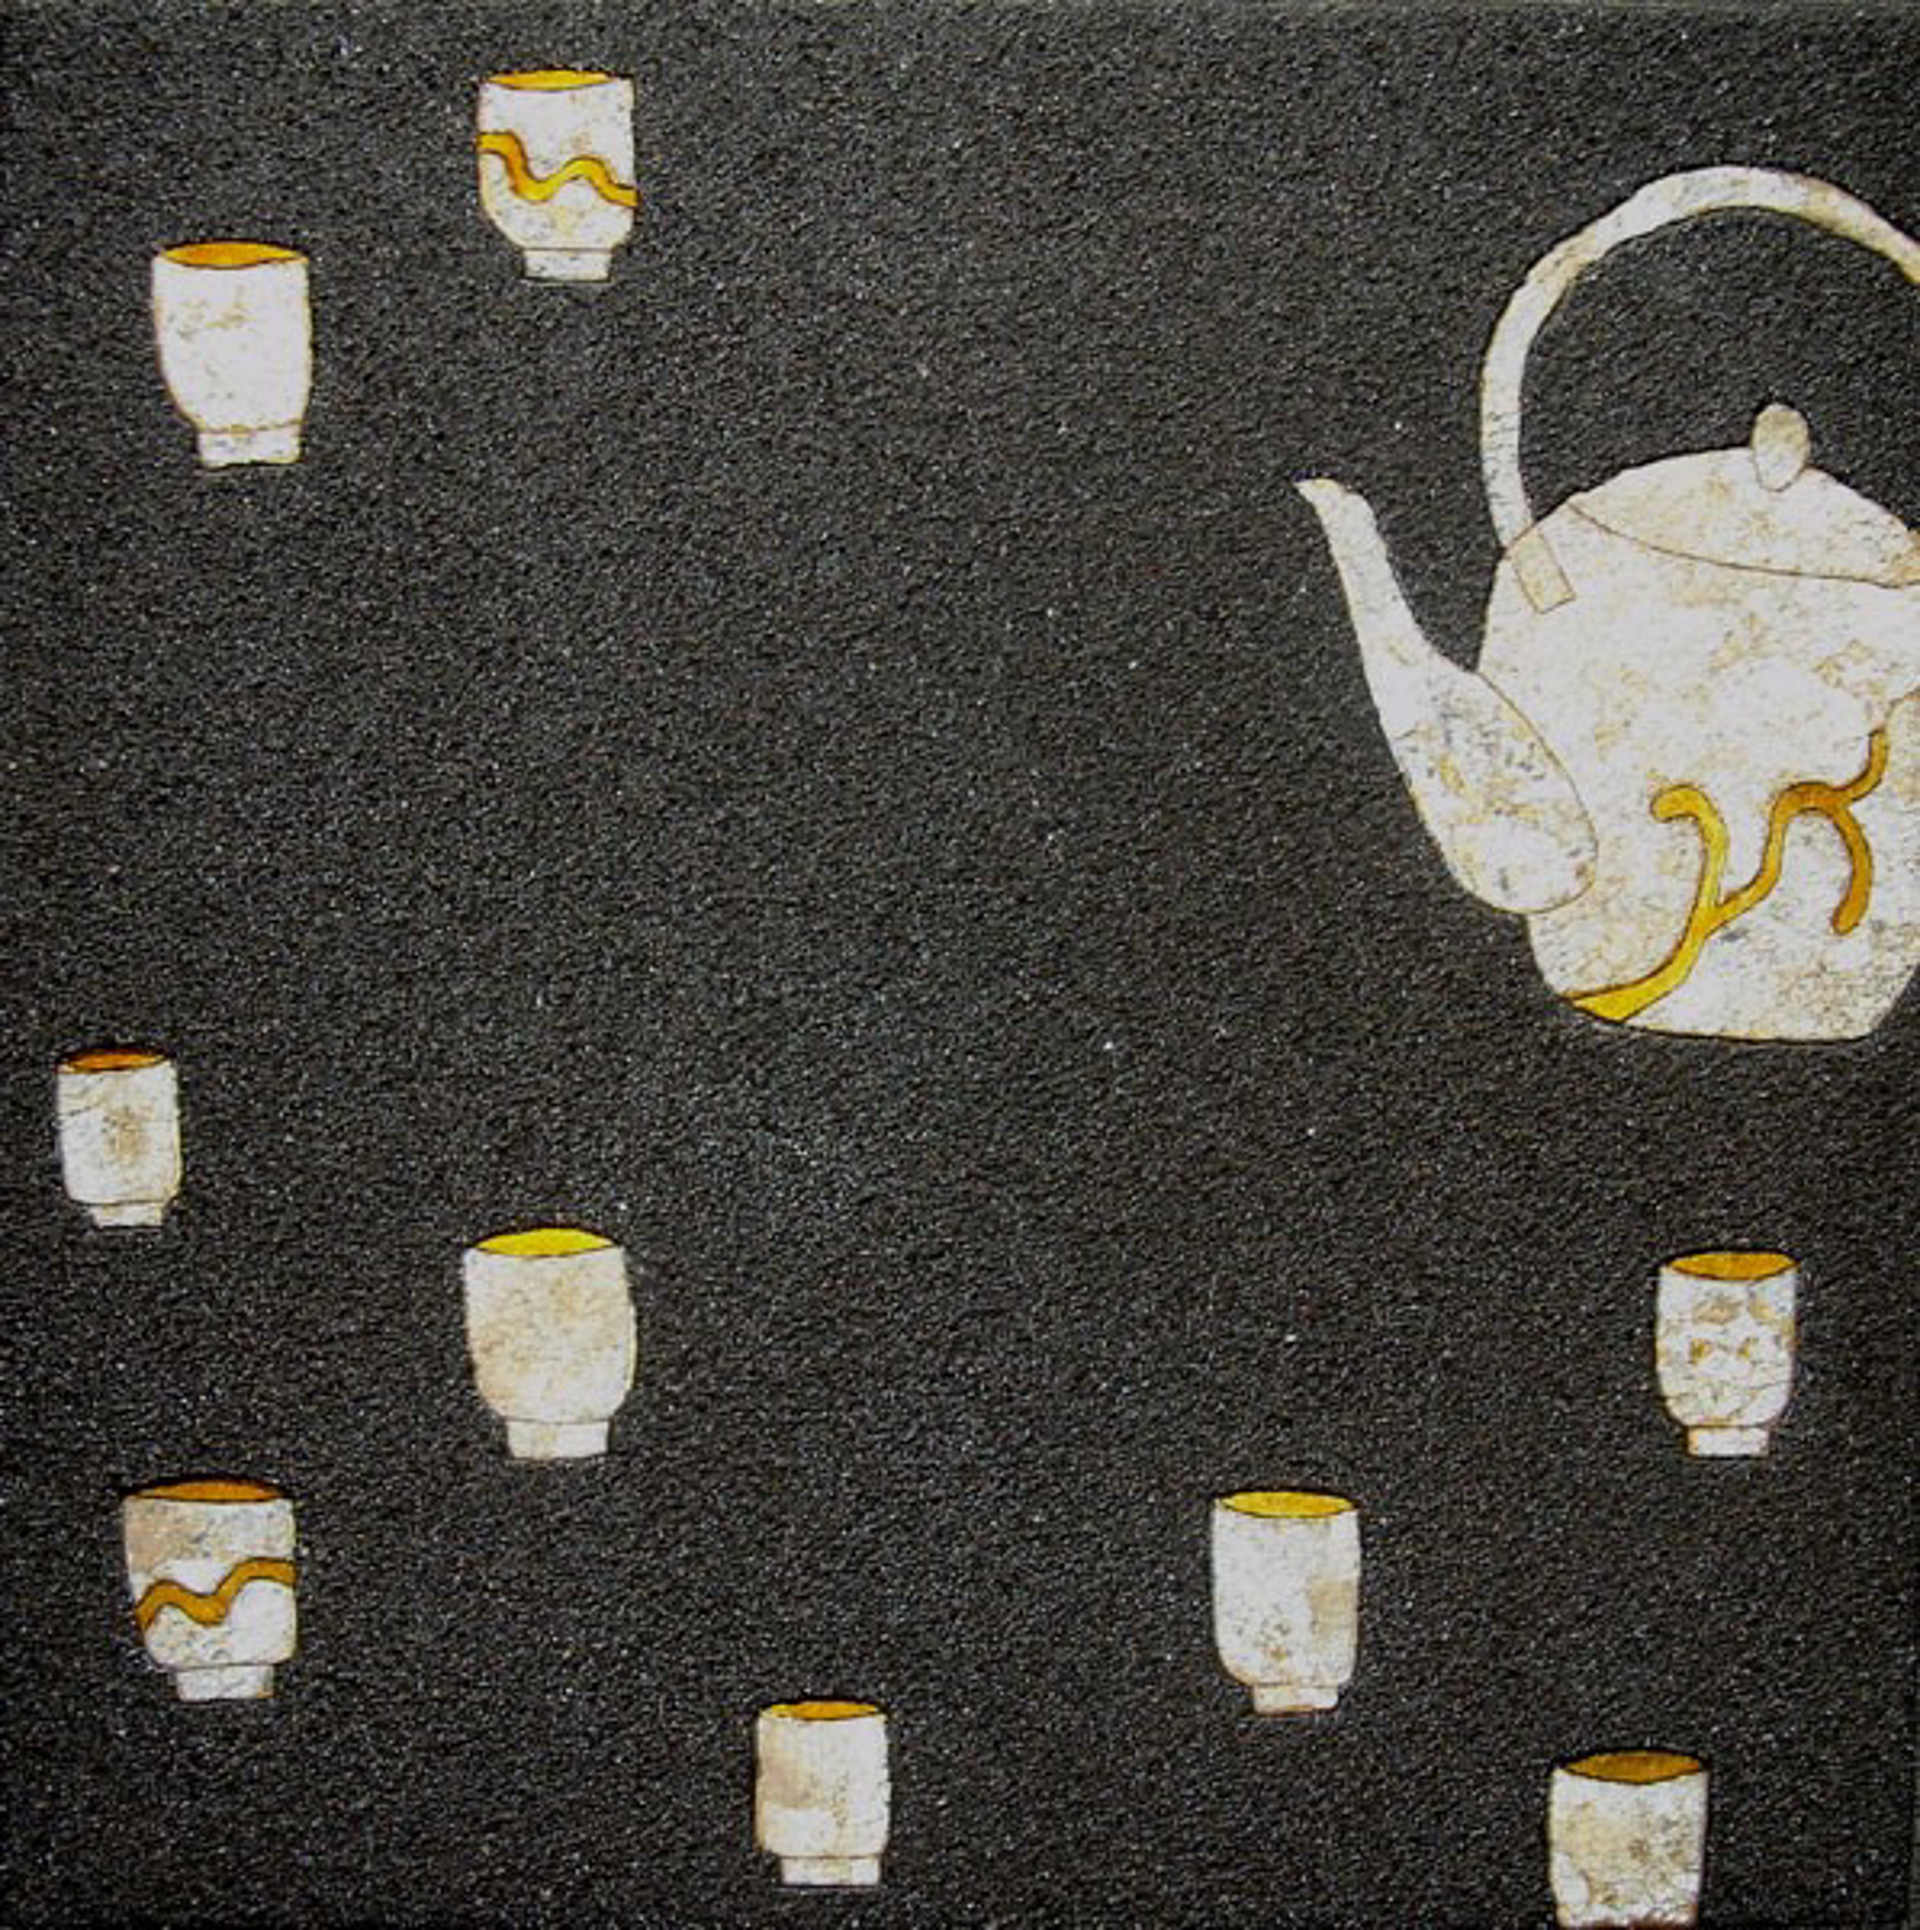 Teapot IV by Bui Cong Khanh